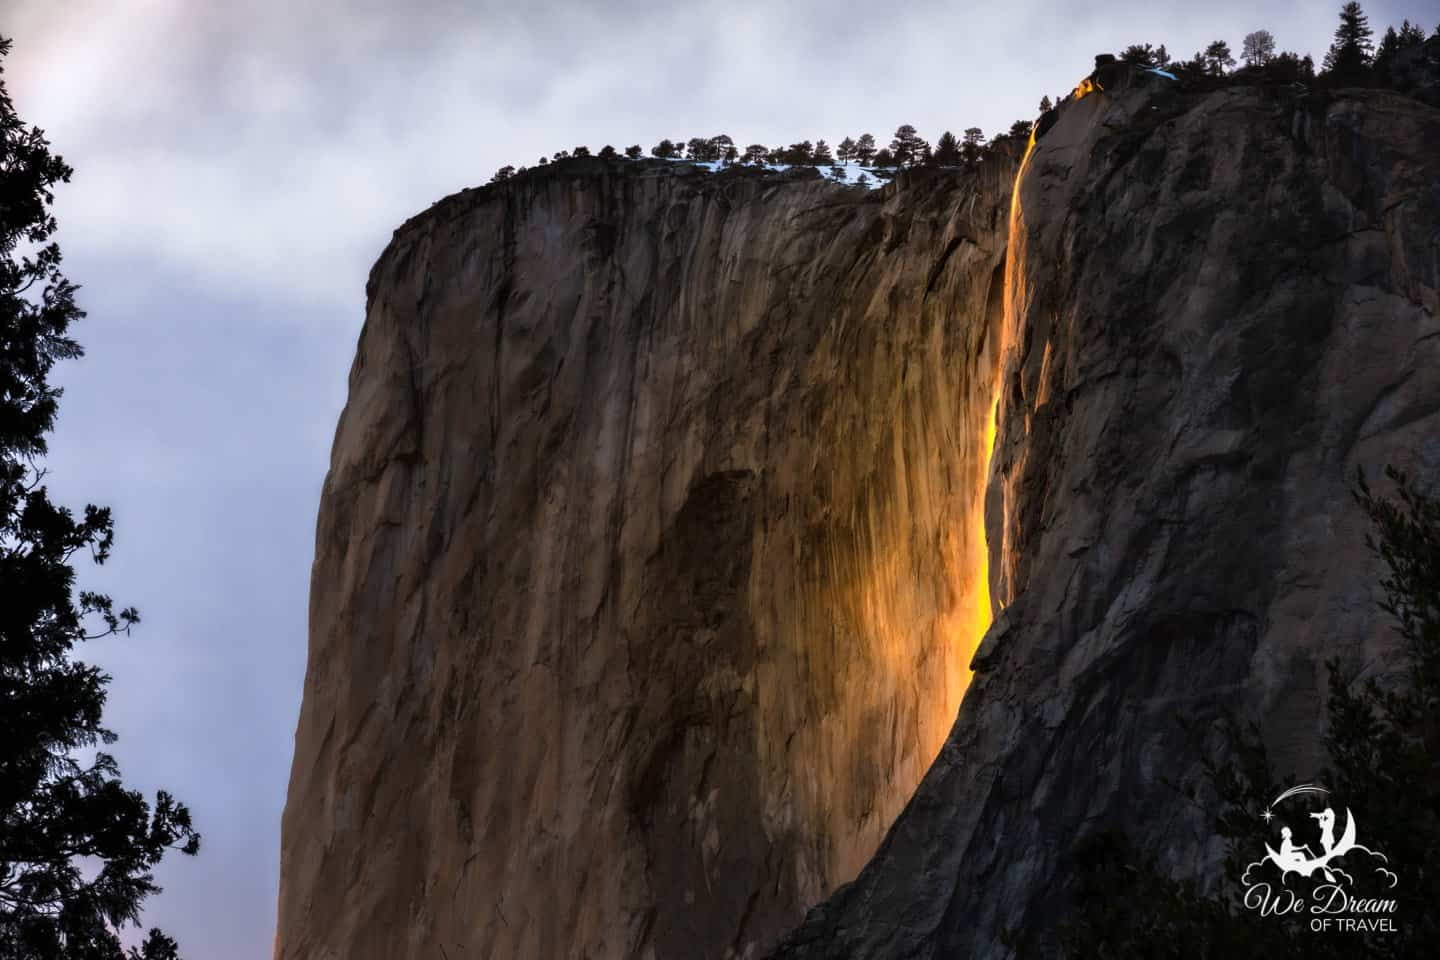 A popular view for viewing the Firefalls of Yosemite.